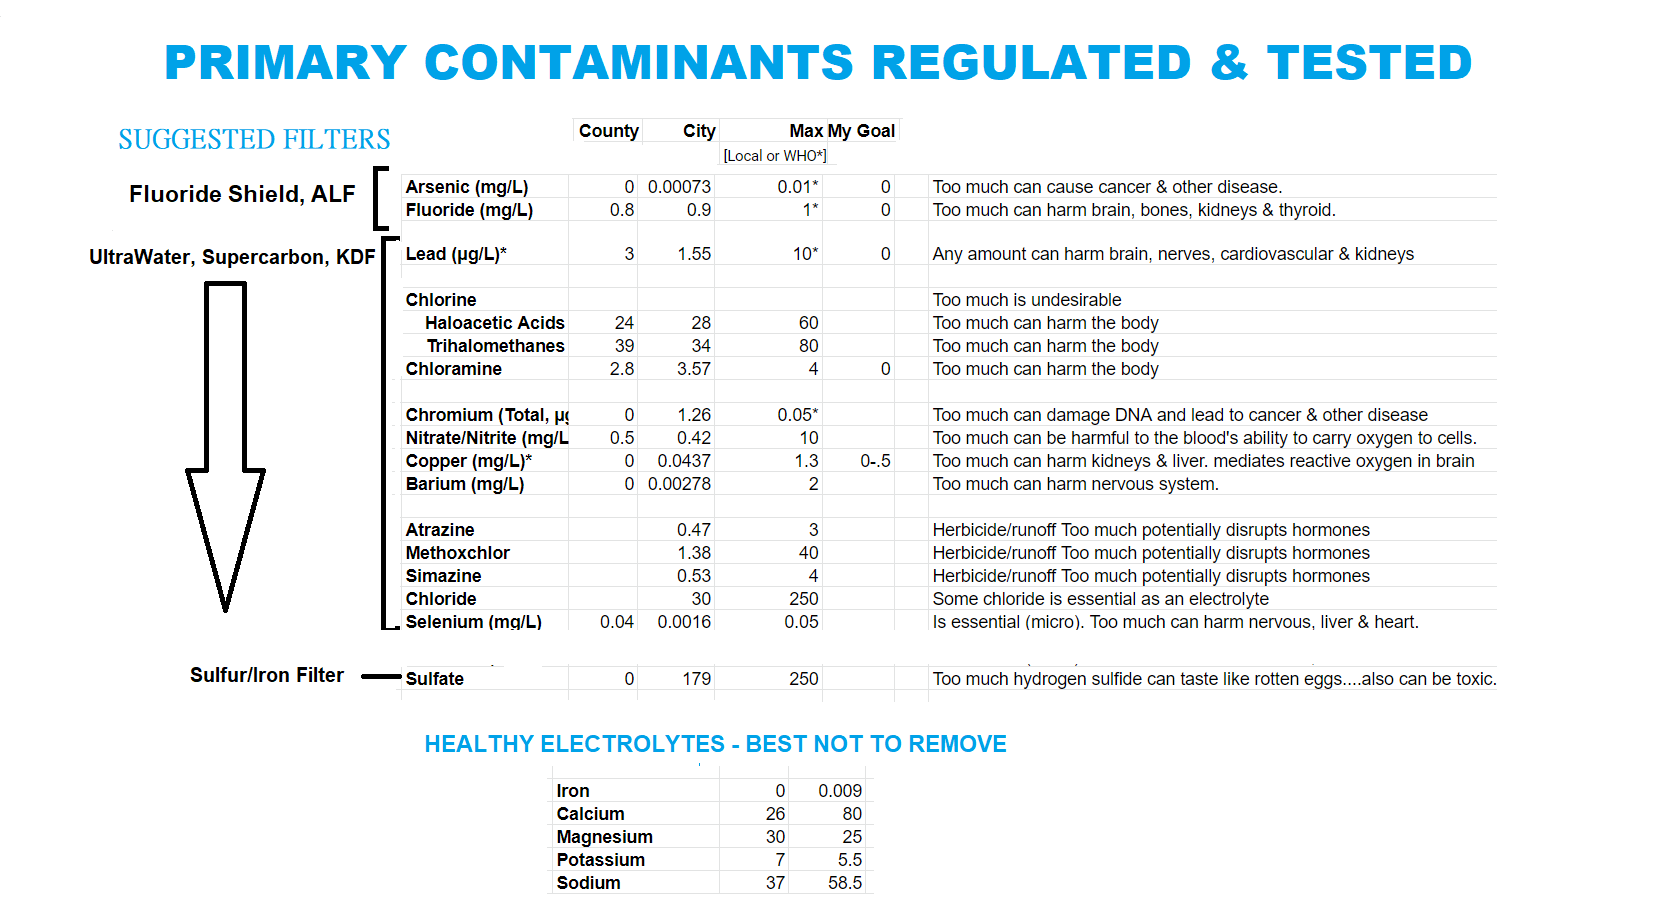 St. Louis City & County Water Main Contaminants